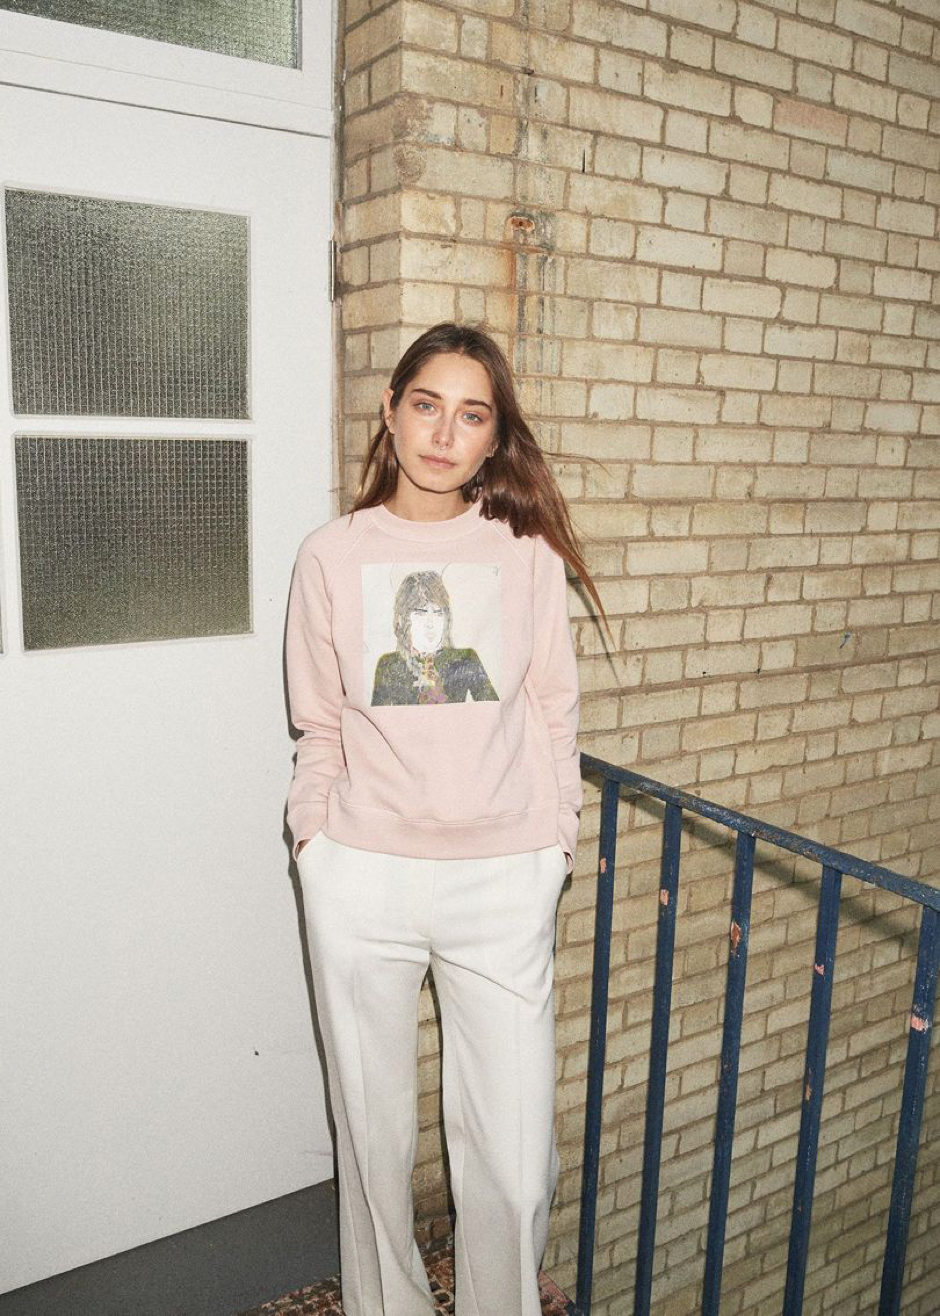 SOURCE:  http://www.vogue.co.uk/gallery/alexa-chung-clothing-line-pictures